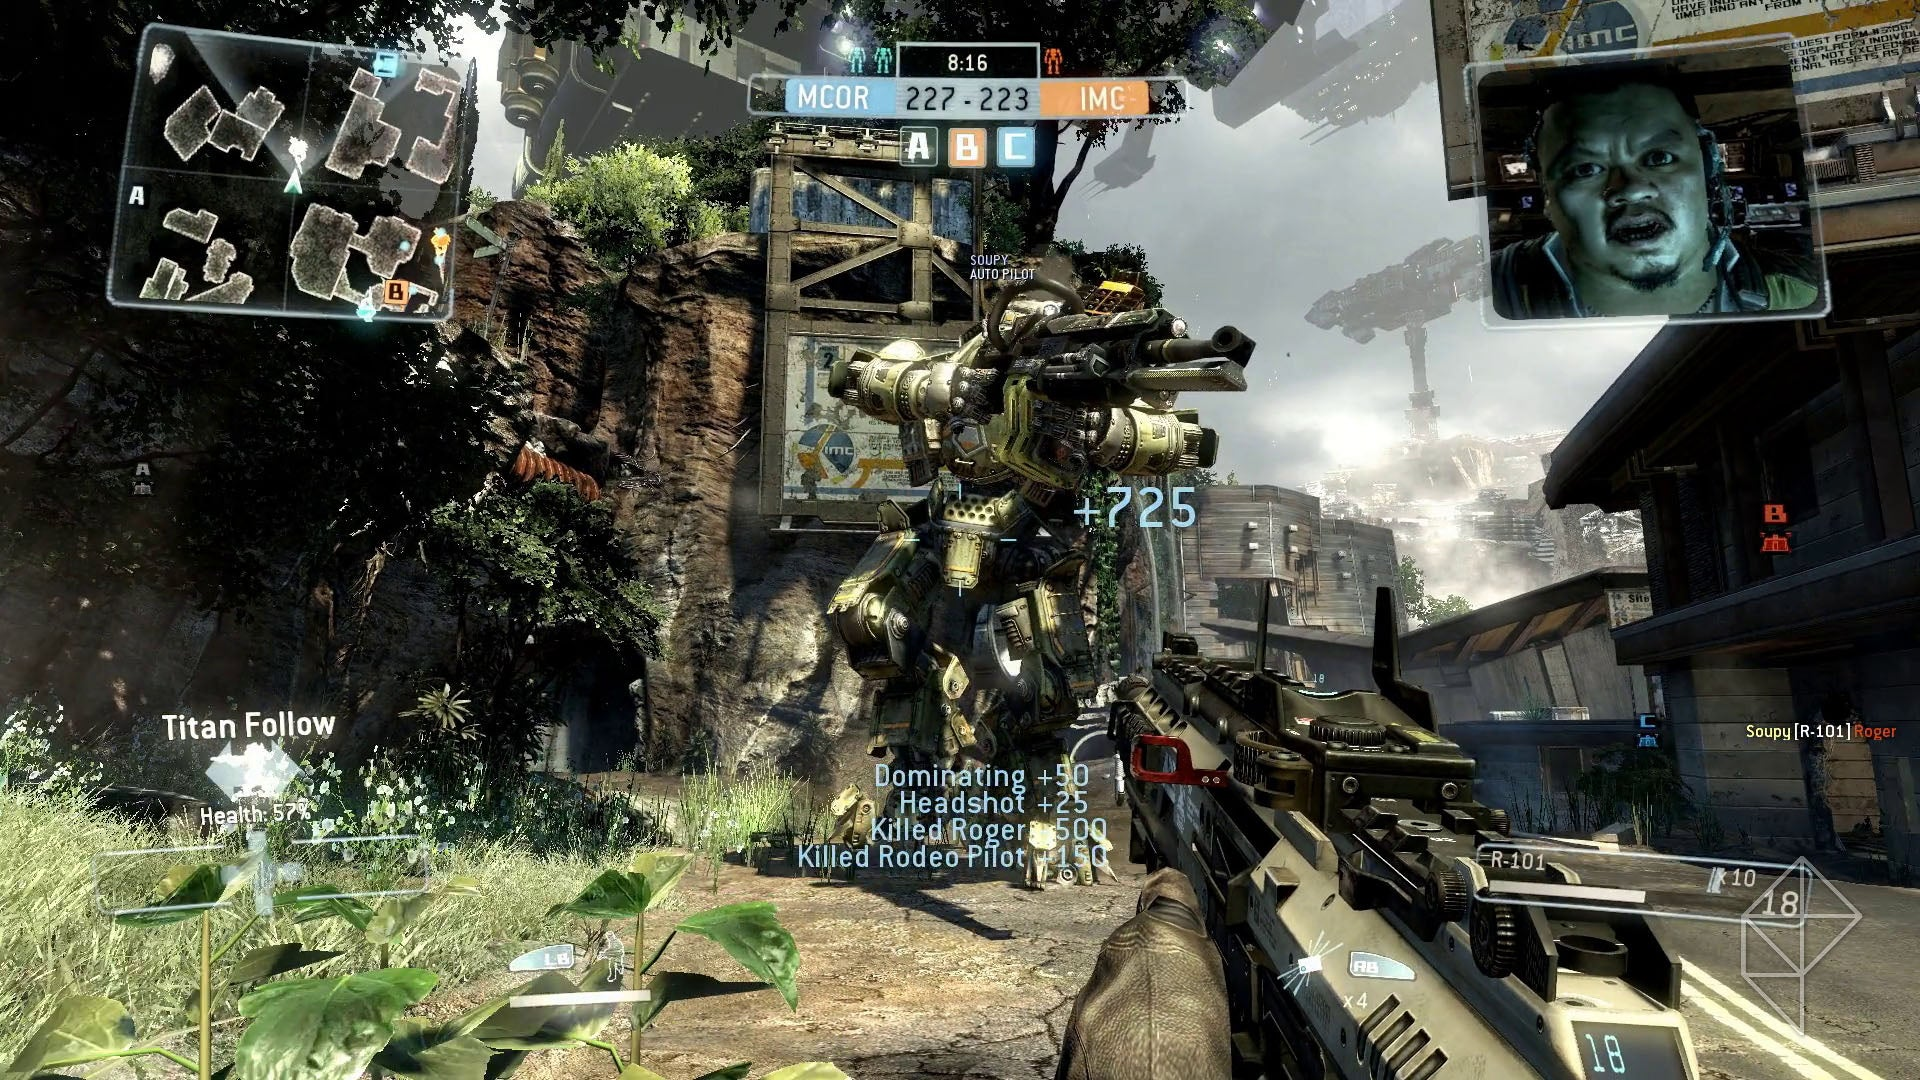 halo 1 maps with Titanfall Pc Impressions Fre Ically Fun Robot Violence When The Servers Work on File Spongebob as well Venus also God has created pla s en in addition Glycolysispath together with Play Pokemon In Halo 5 And Witness The Jankiest Blastoise Ever.